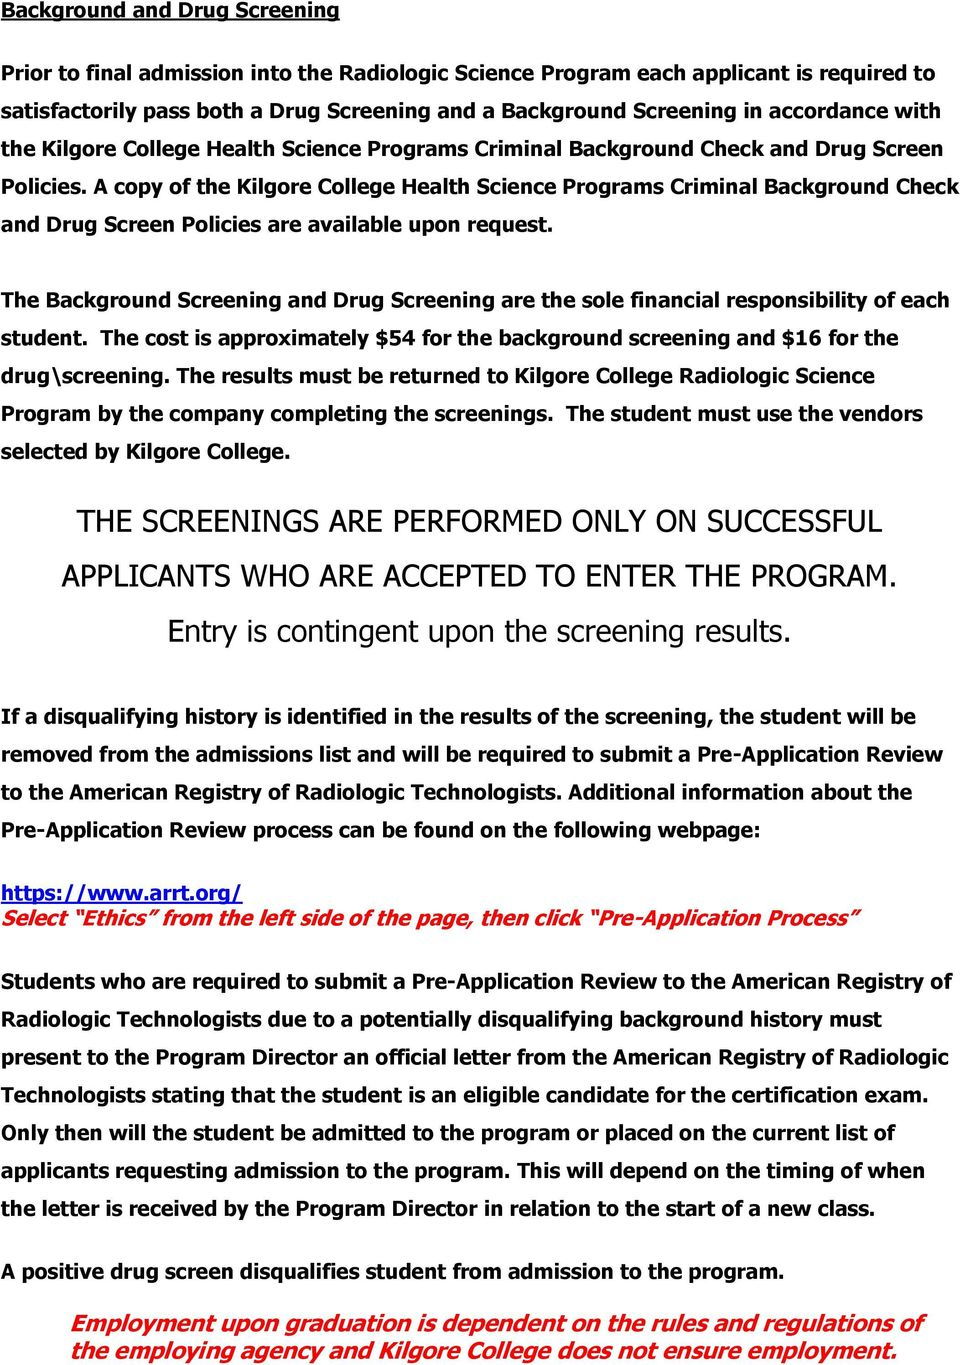 A copy of the Kilgore College Health Science Programs Criminal Background Check and Drug Screen Policies are available upon request.